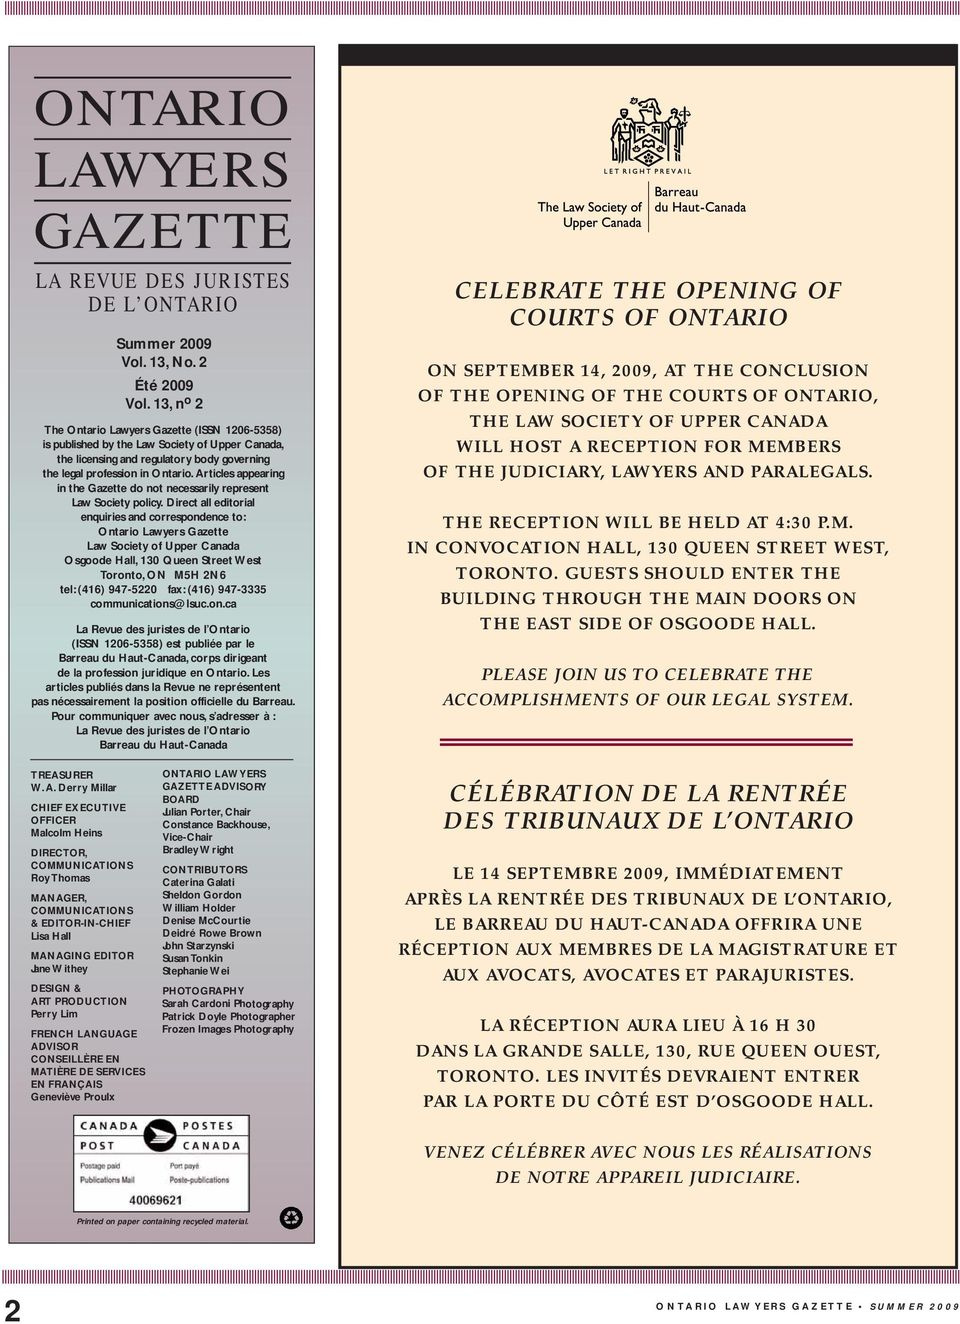 Articles appearing in the Gazette do not necessarily represent Law Society policy.